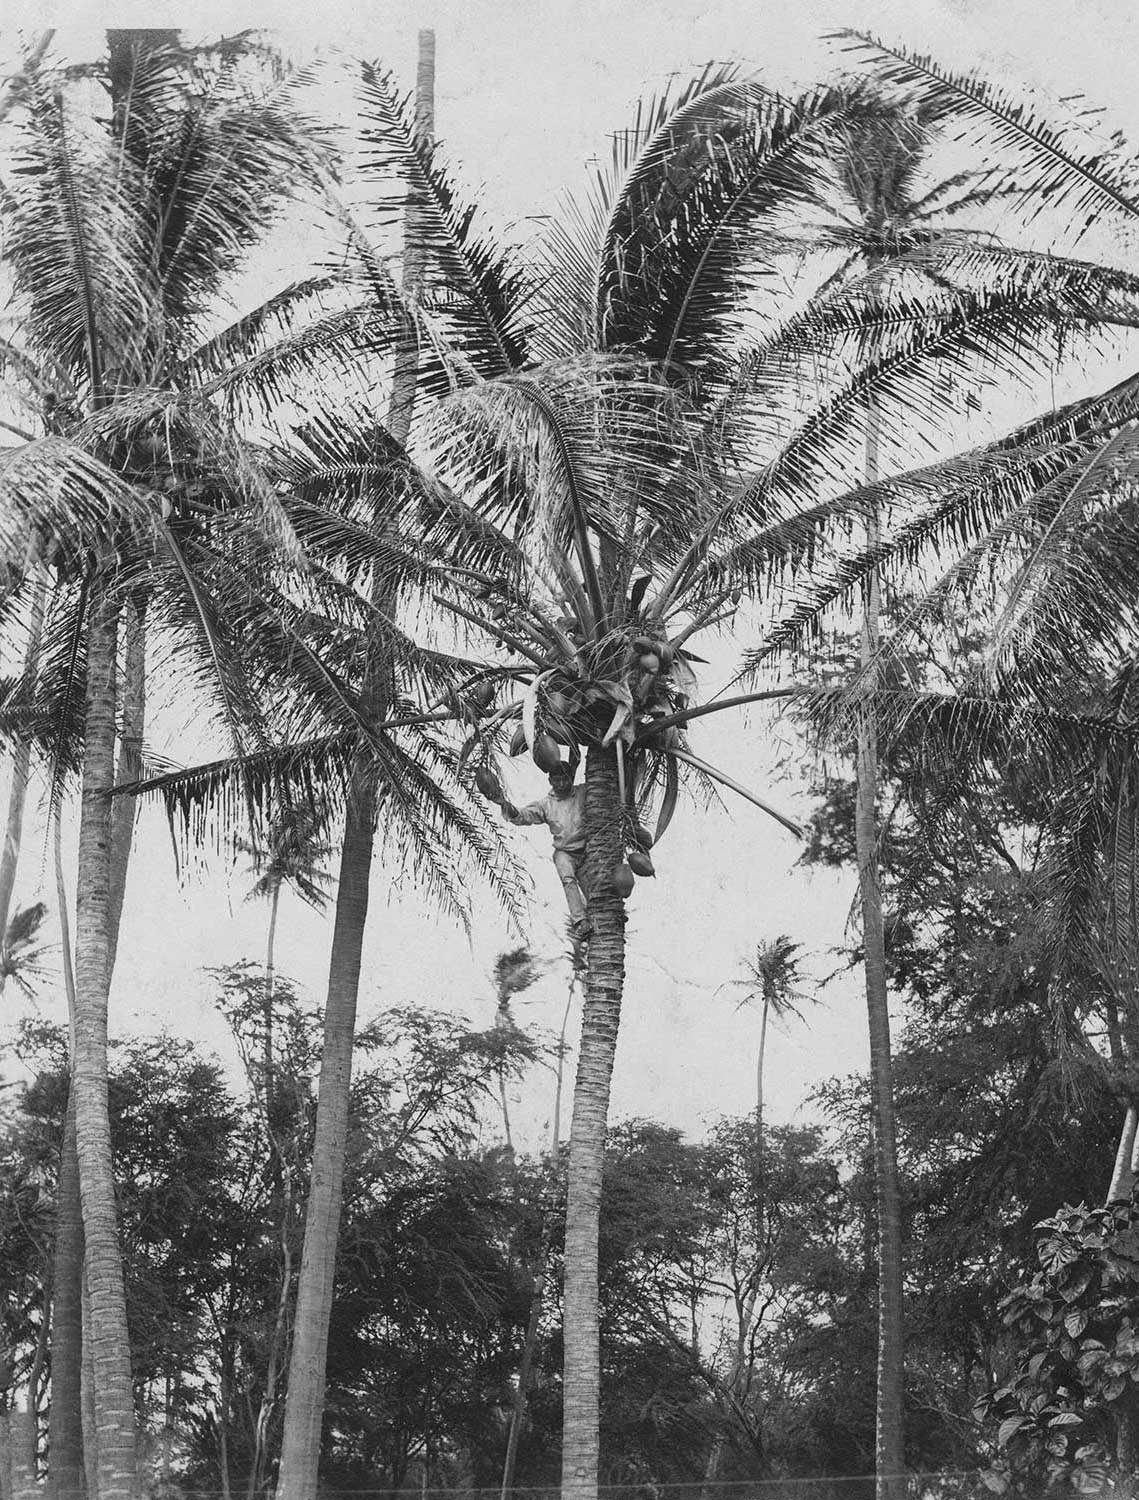 Black and white developed image of a coconut farmer picking nui (coconut) off a tree.